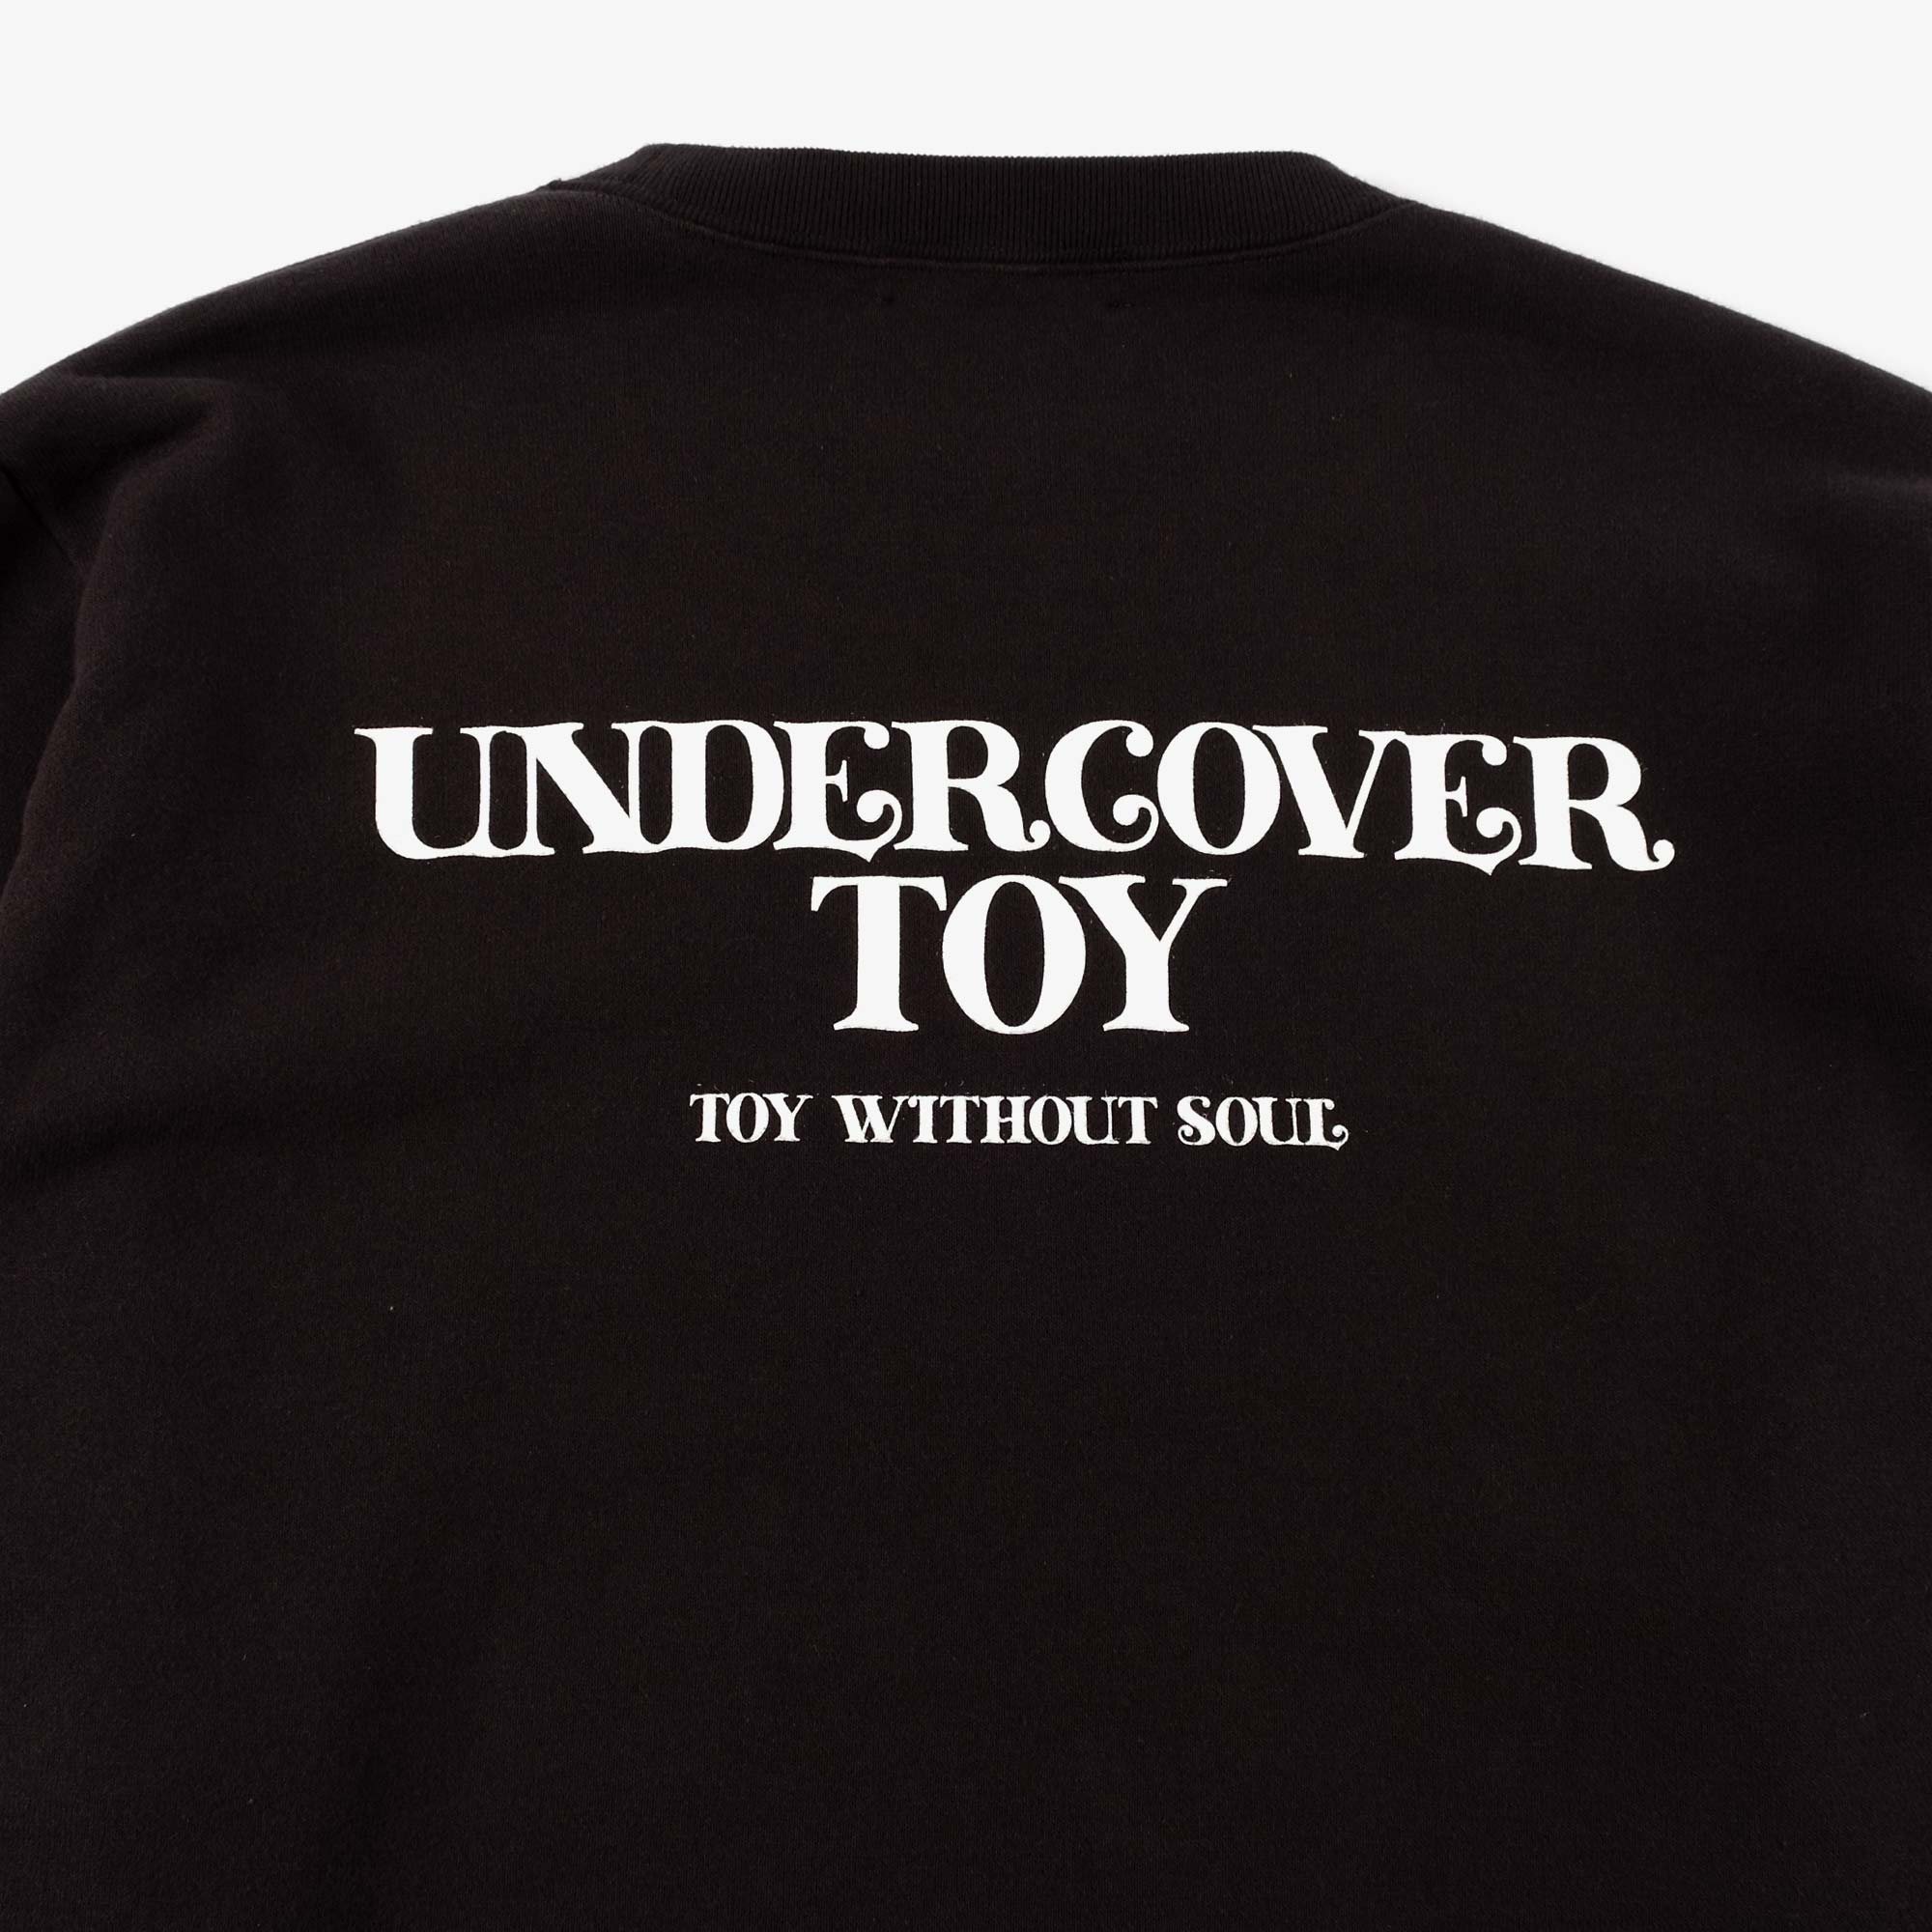 Undercover Toy Sweat UC1A4891-2 - Black 4